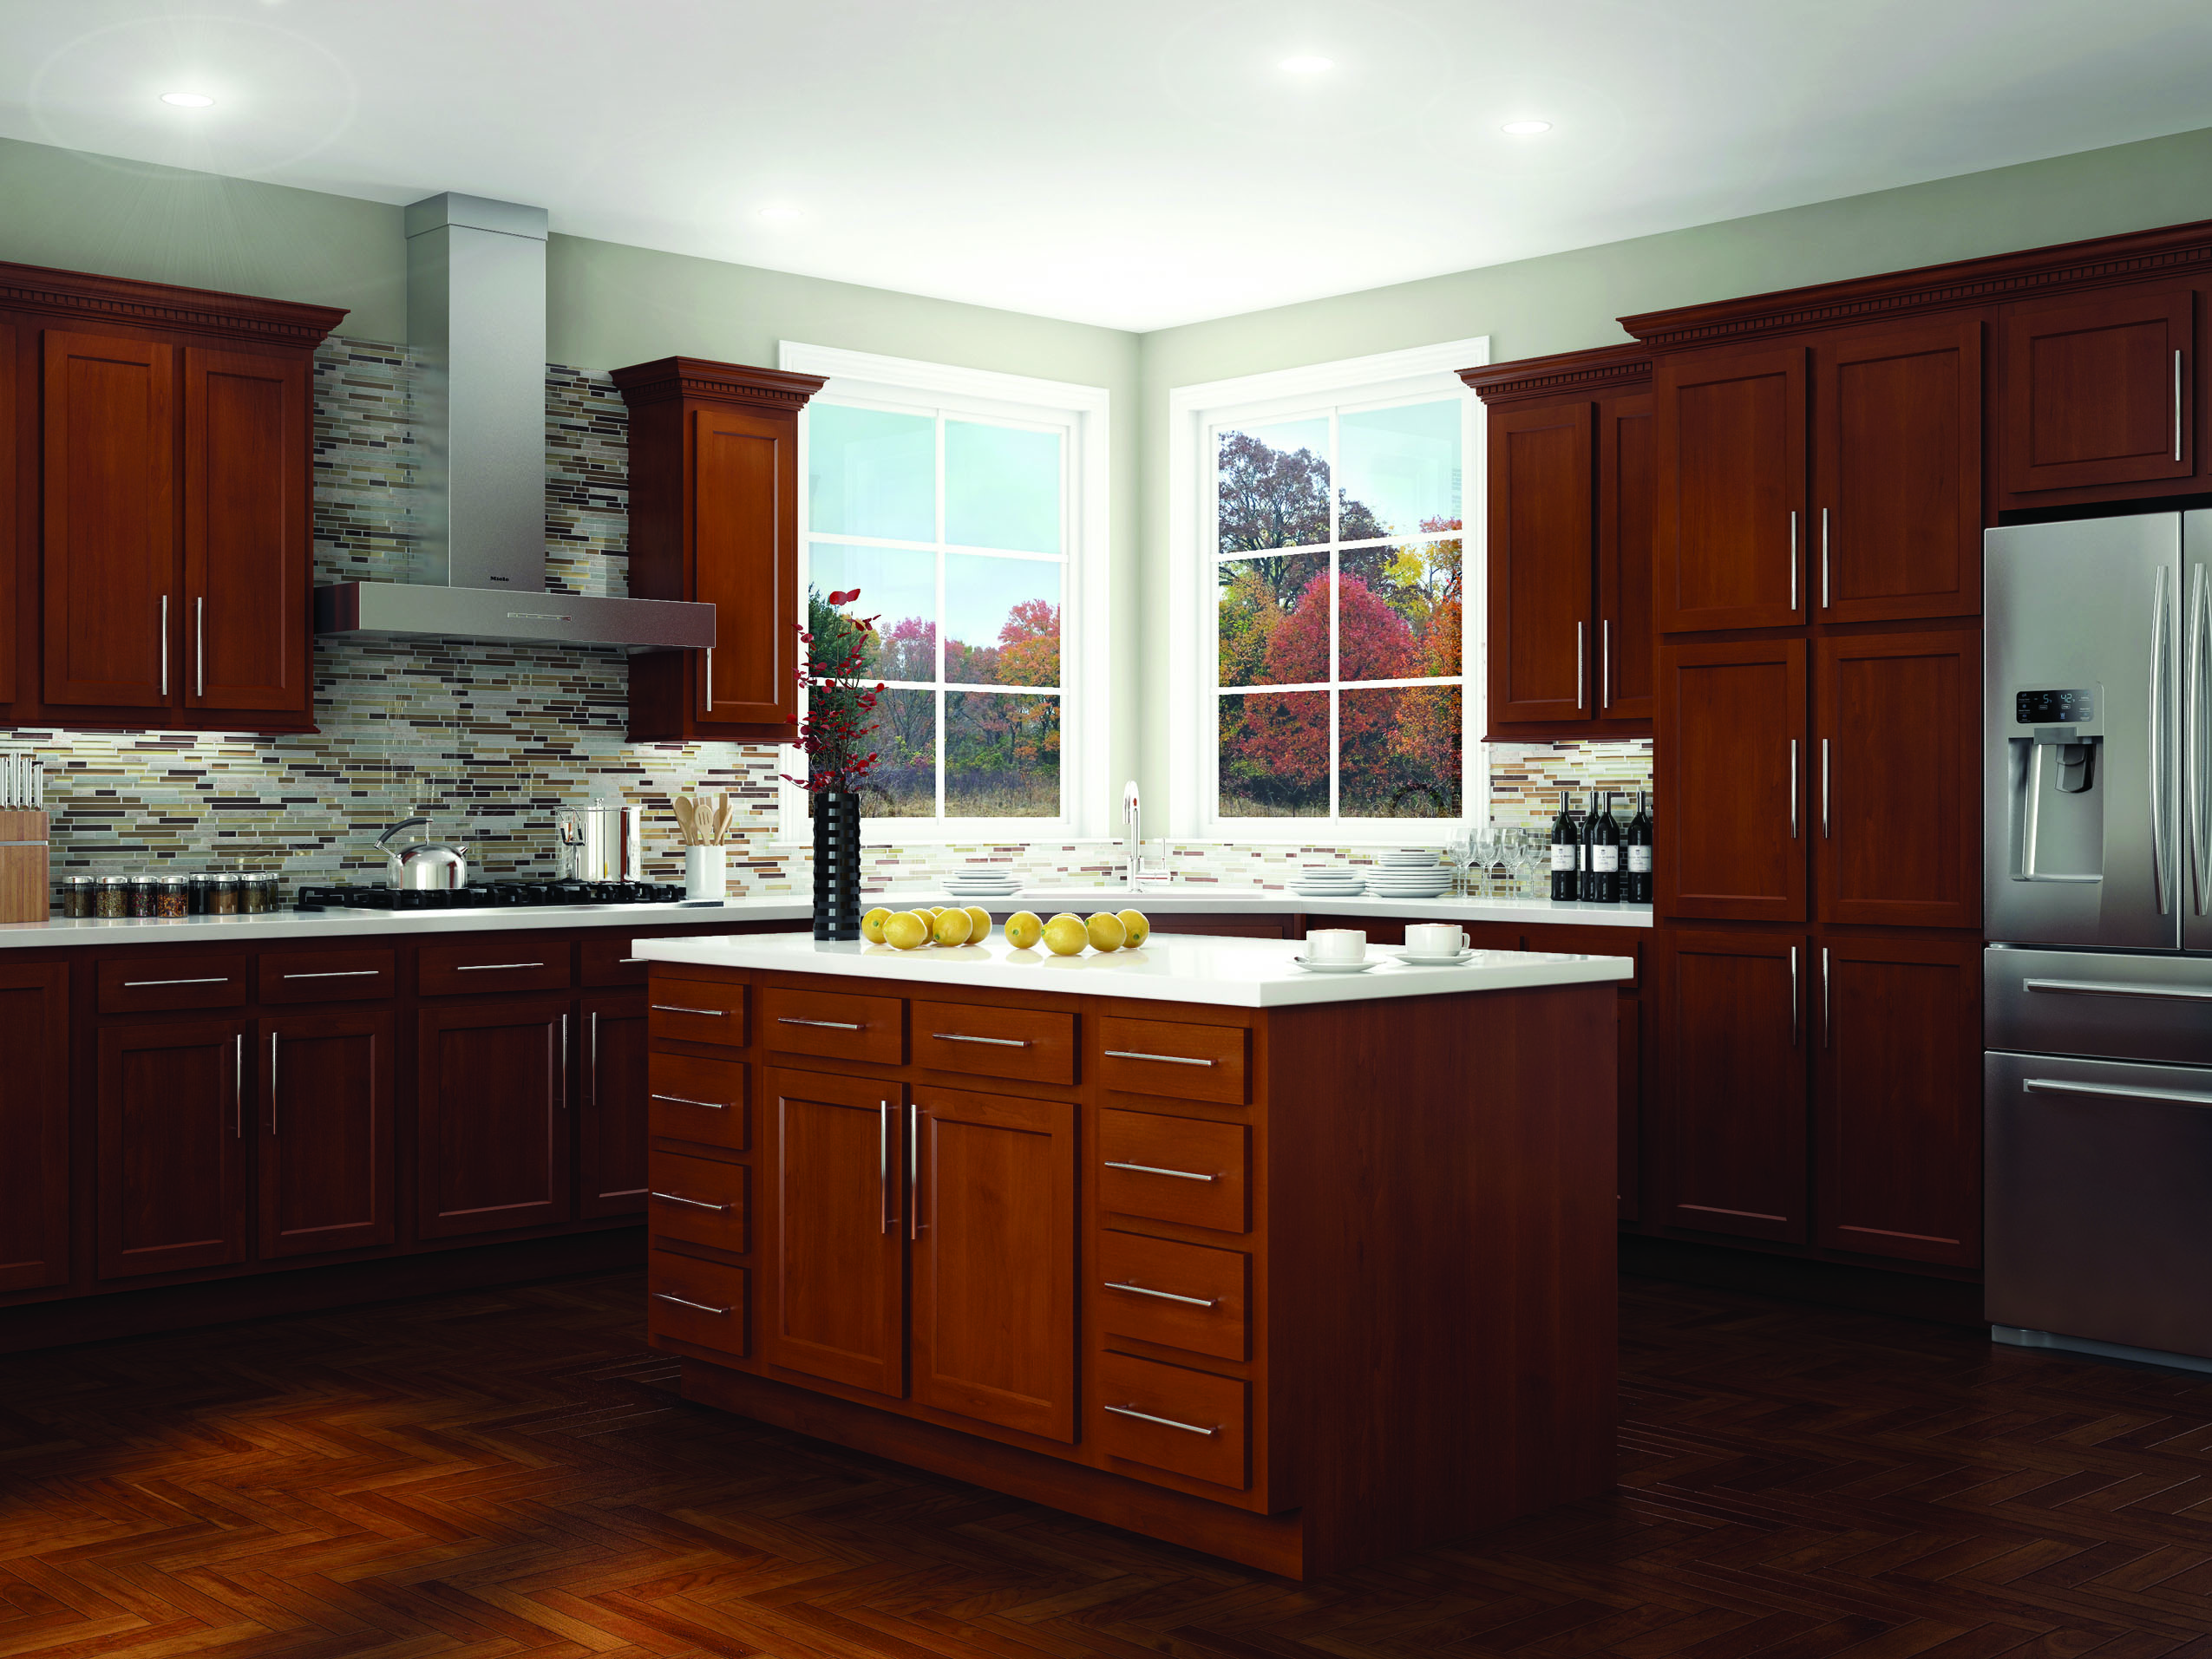 laminate image photos the design regard swanstone com of designs clayton graphics fresh countertops kitchen i undermount countertop to white sink with lovely best